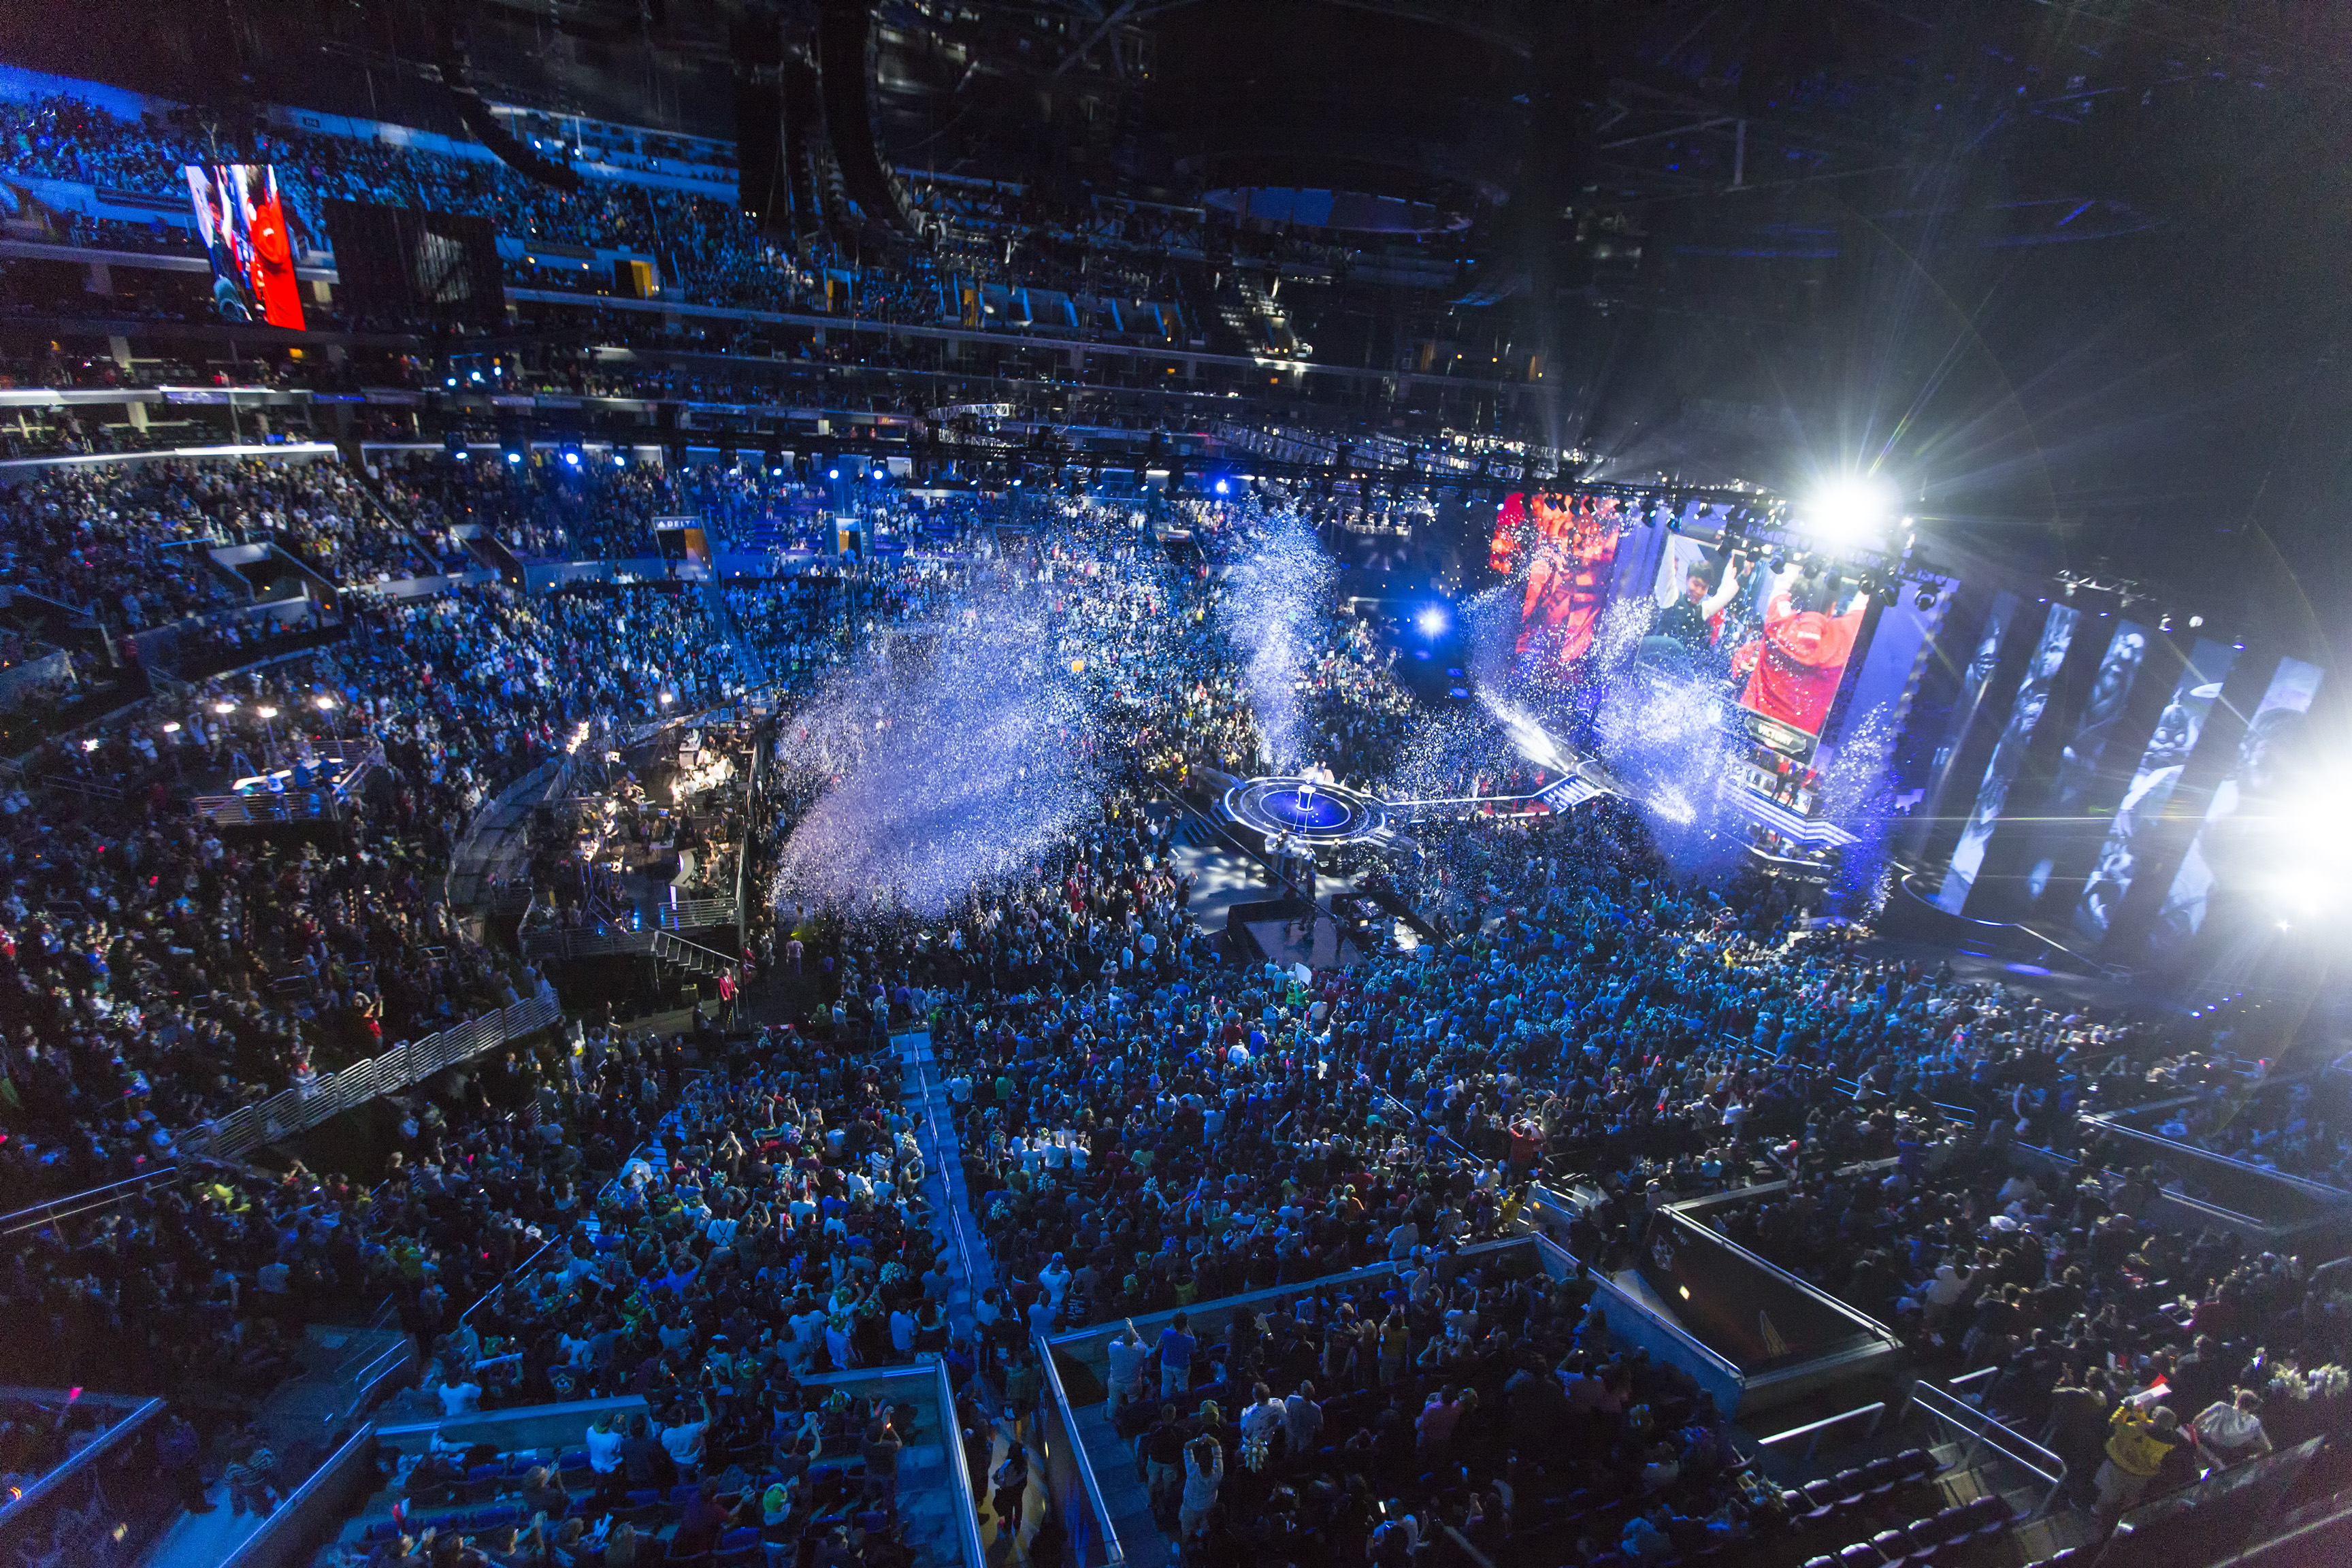 2016 League of Legends World Championship will be held in North America